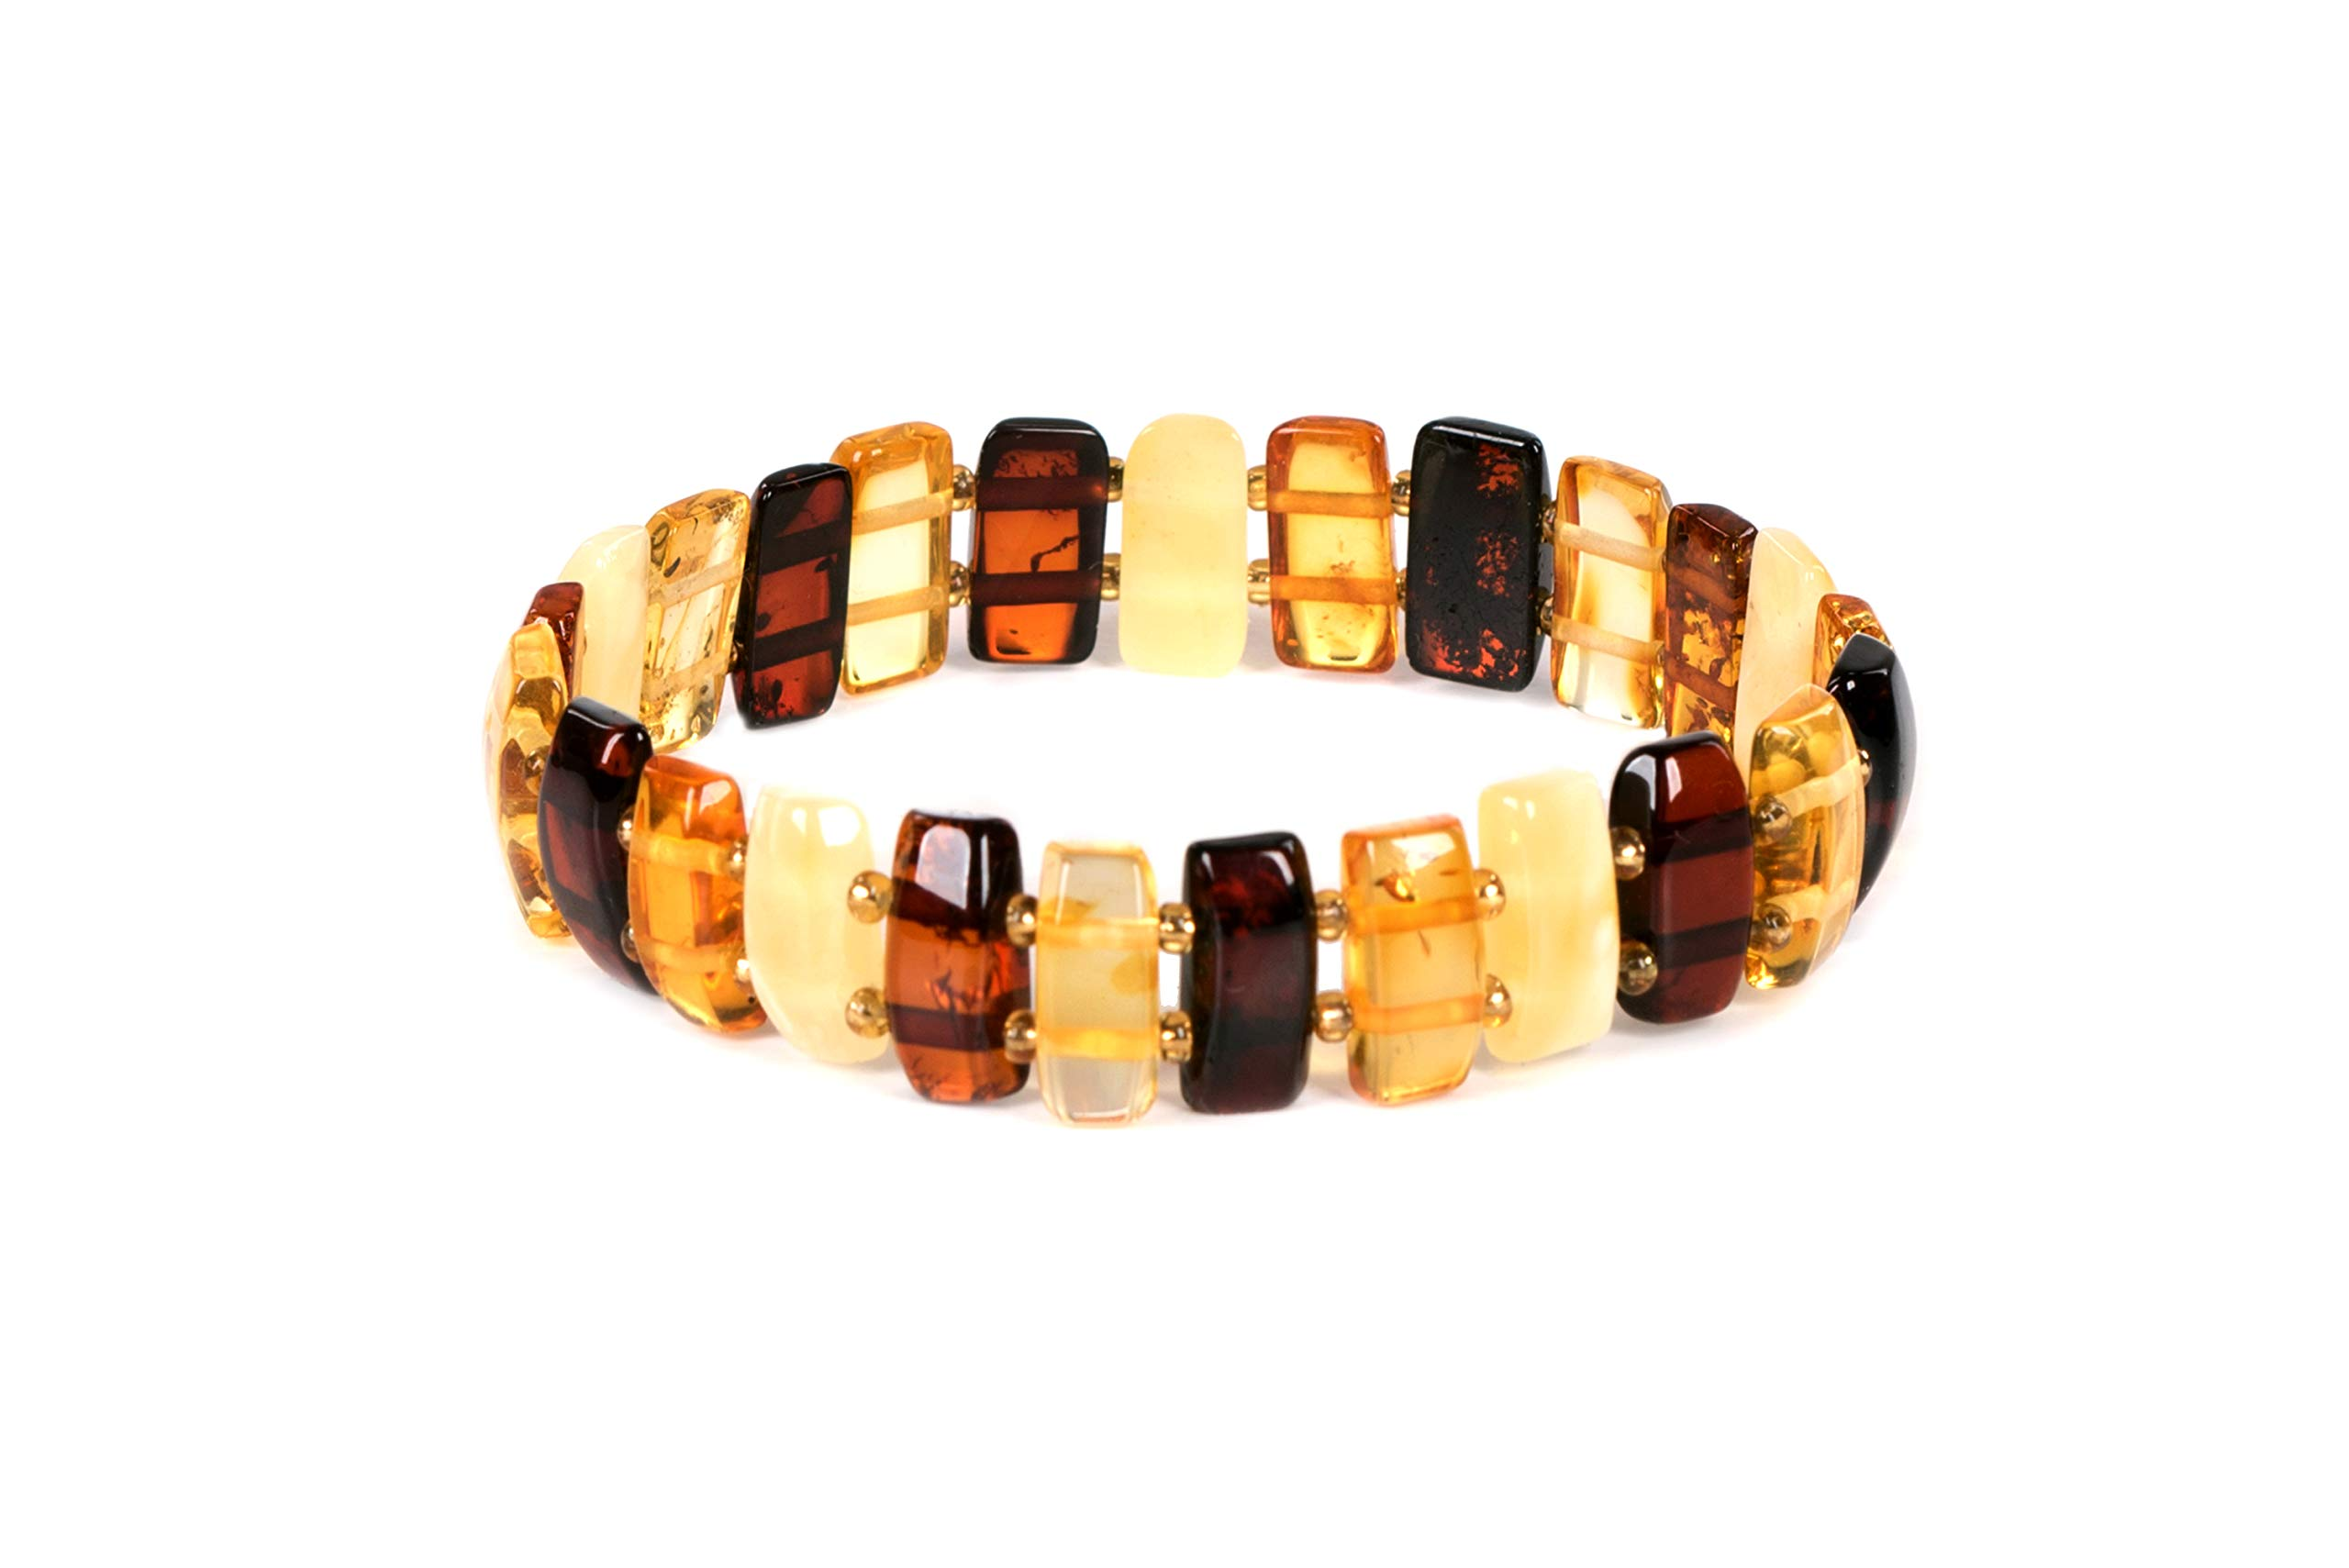 AMBERAGE Natural Baltic Amber Stretch Bracelet for Women - Hand Made from Polished/Certified Baltic Amber Beads by AMBERAGE